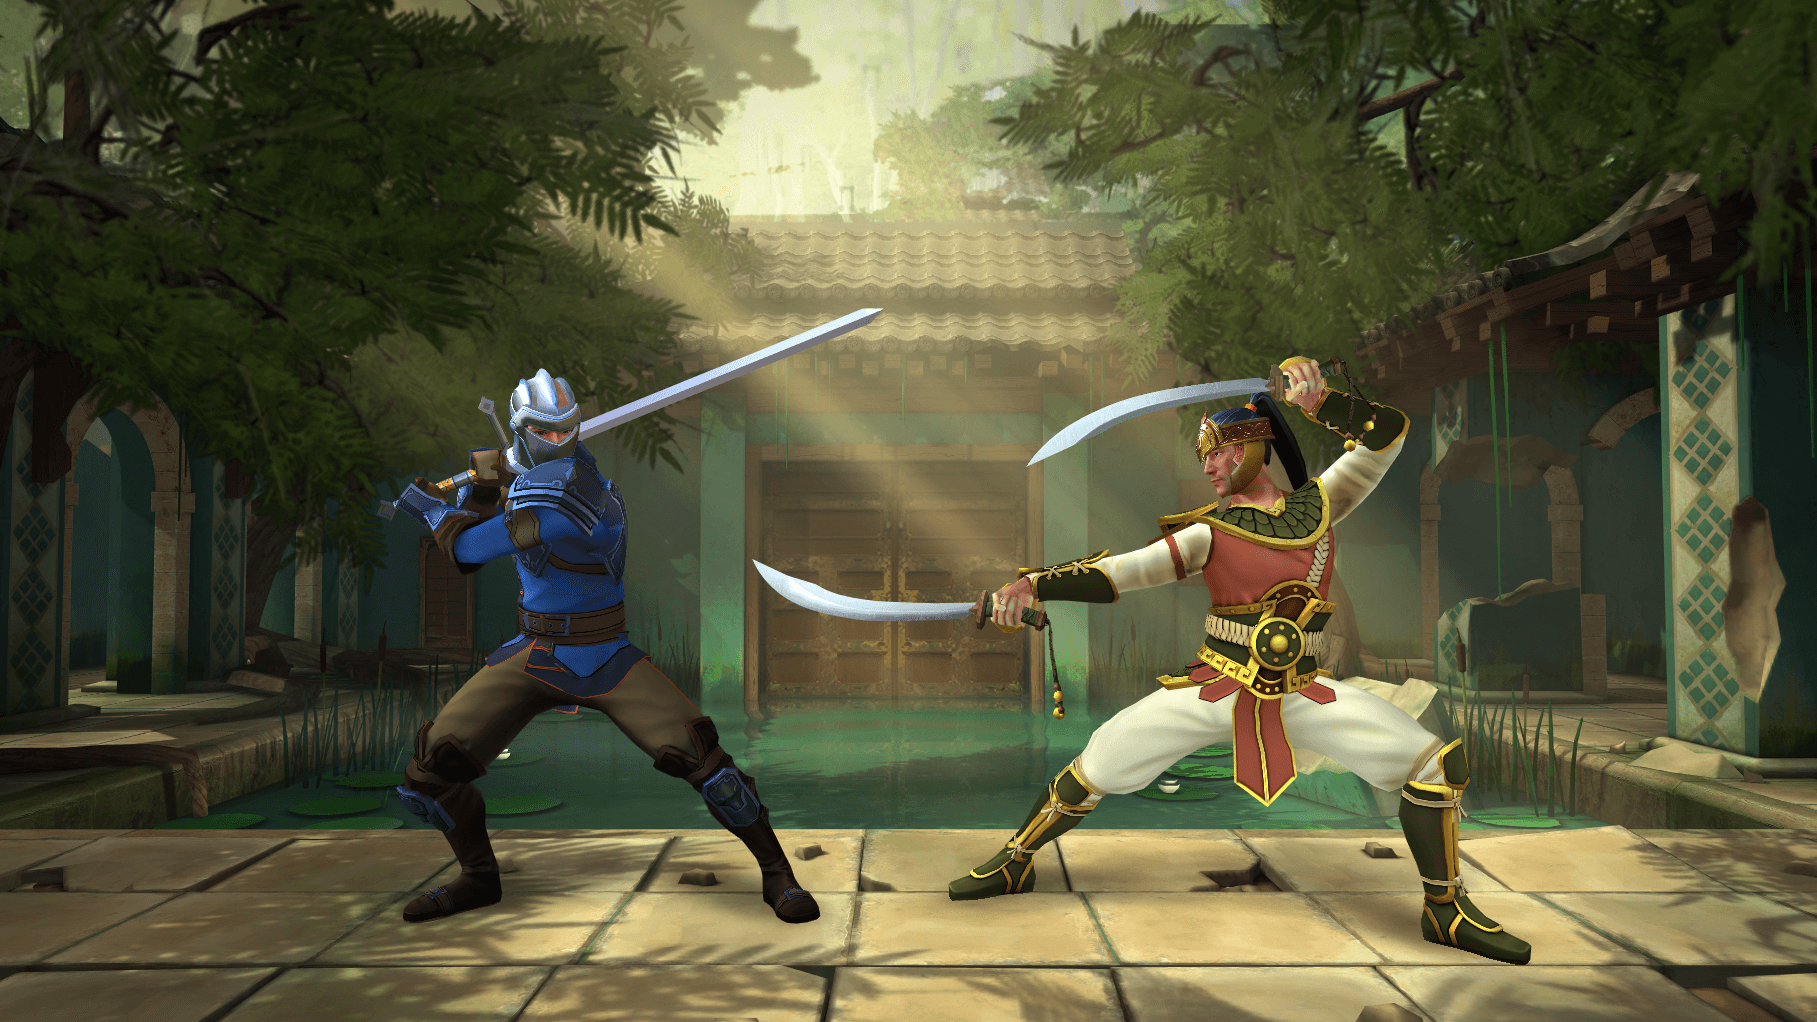 This is a must see: how it will look Shadow Fight 3